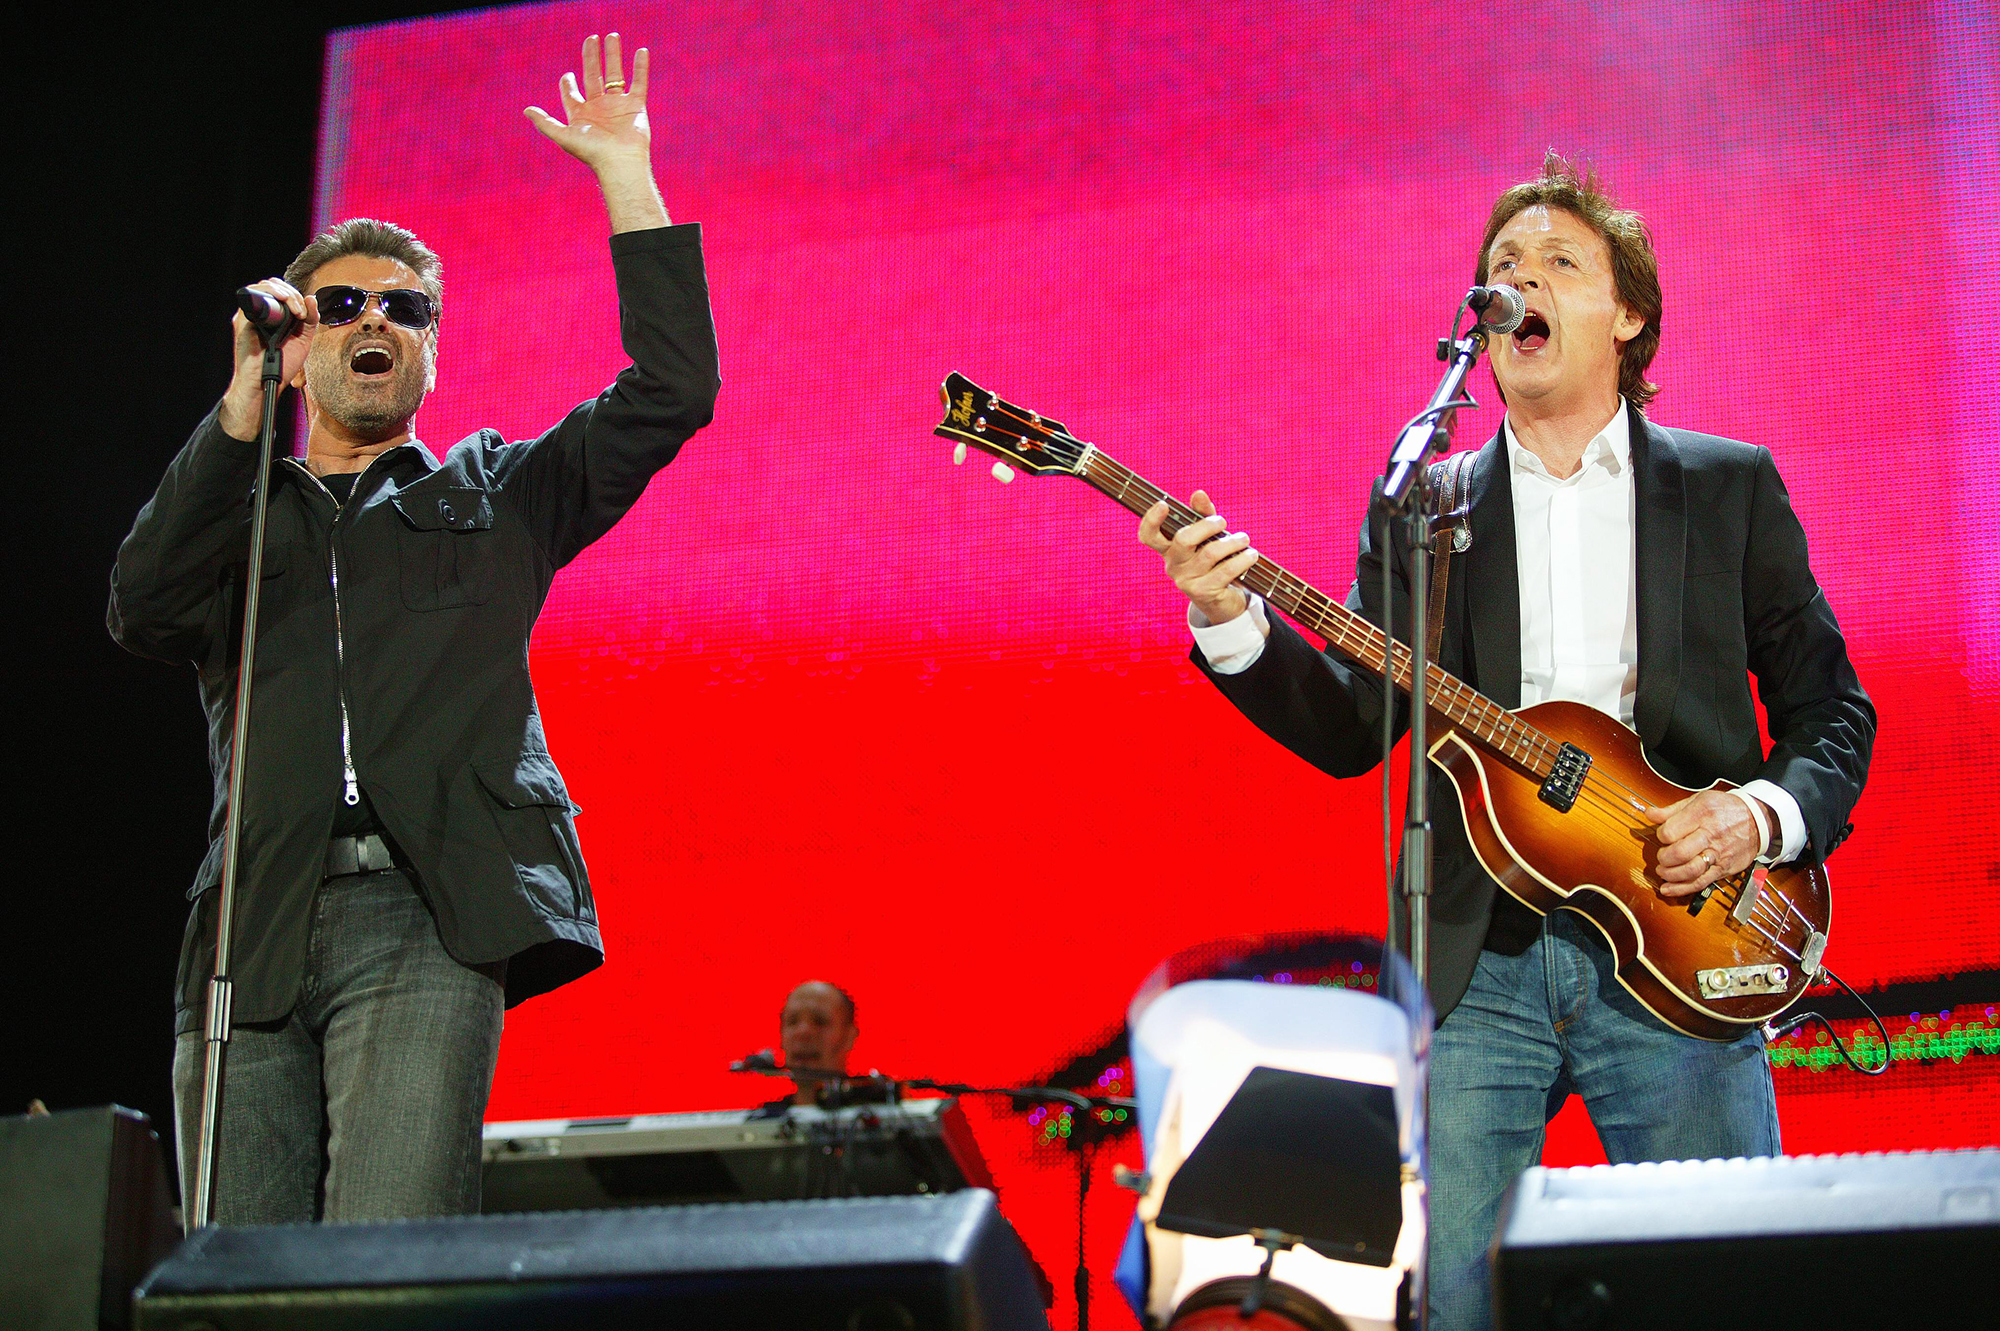 George Michael and Paul McCartney perform at Live 8 in London, on July 2, 2005.